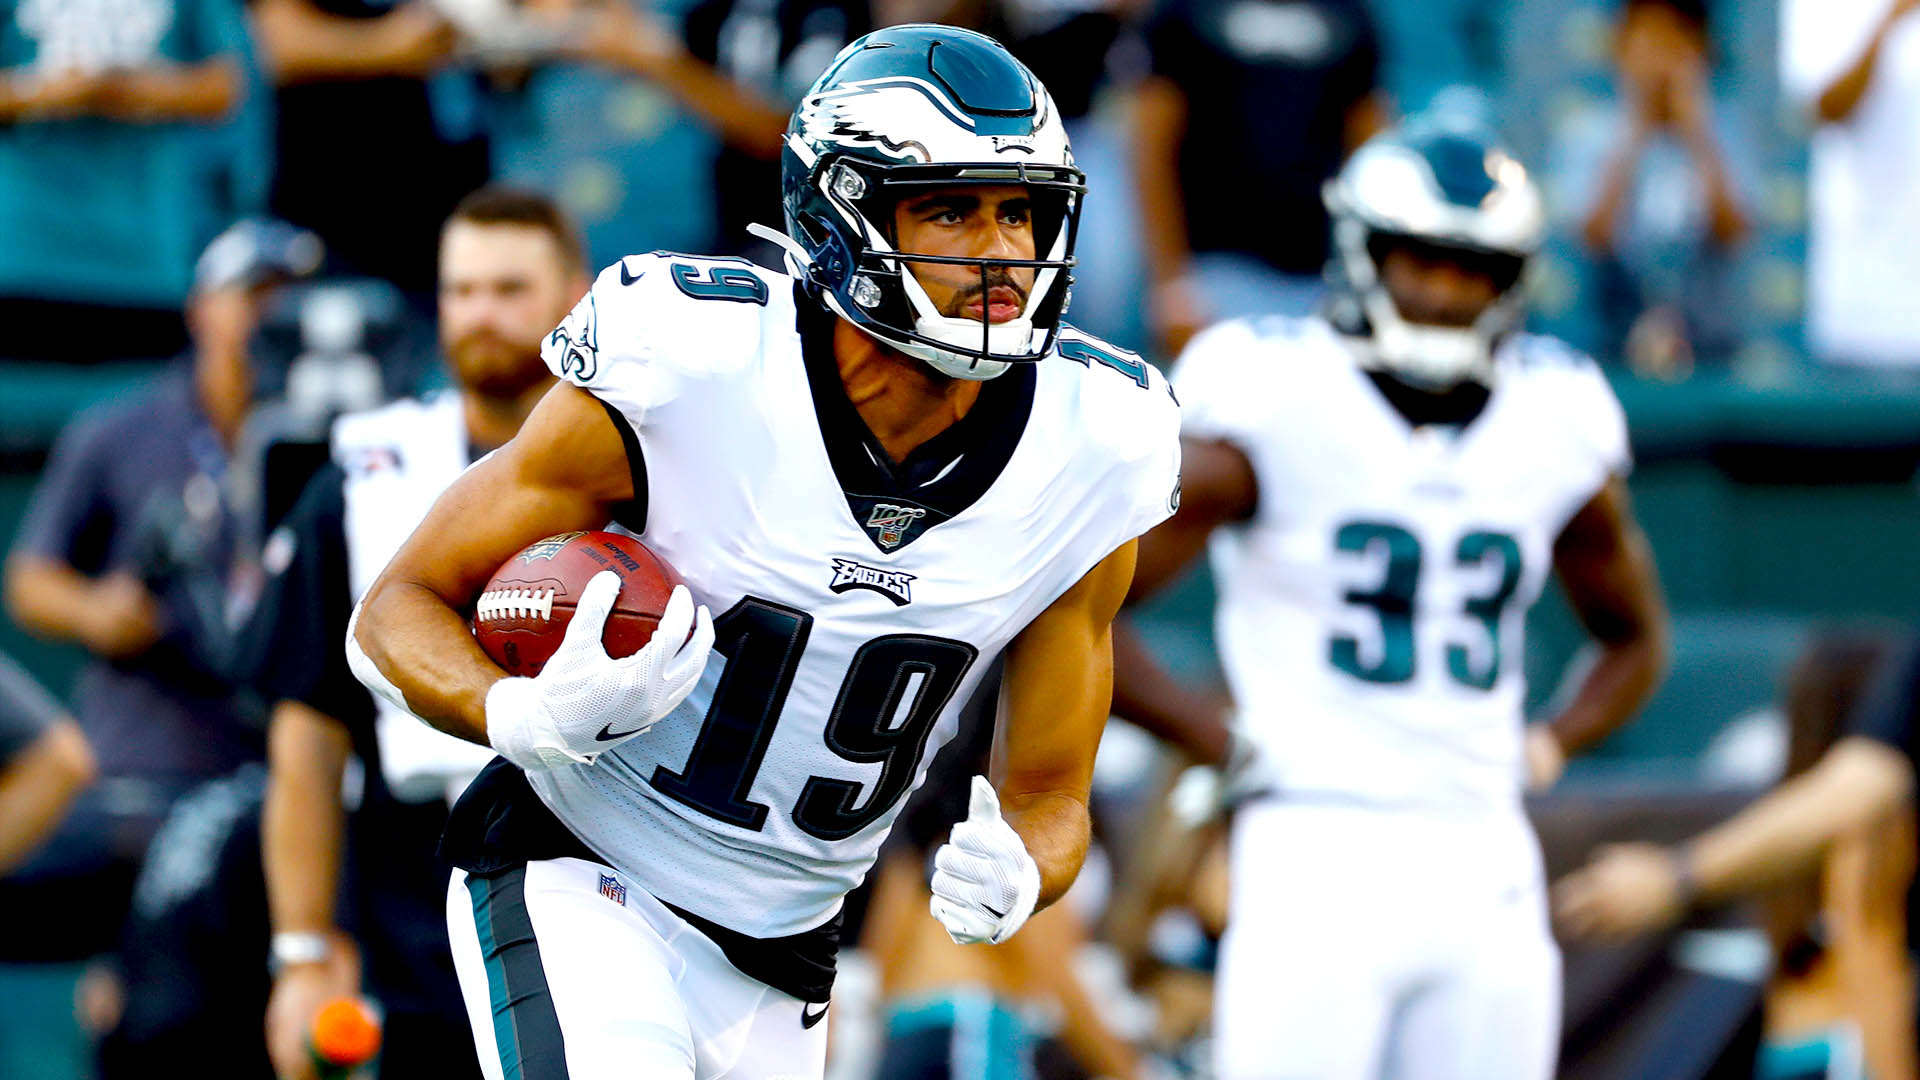 Eagles WR's stock rising fast after explosive performance